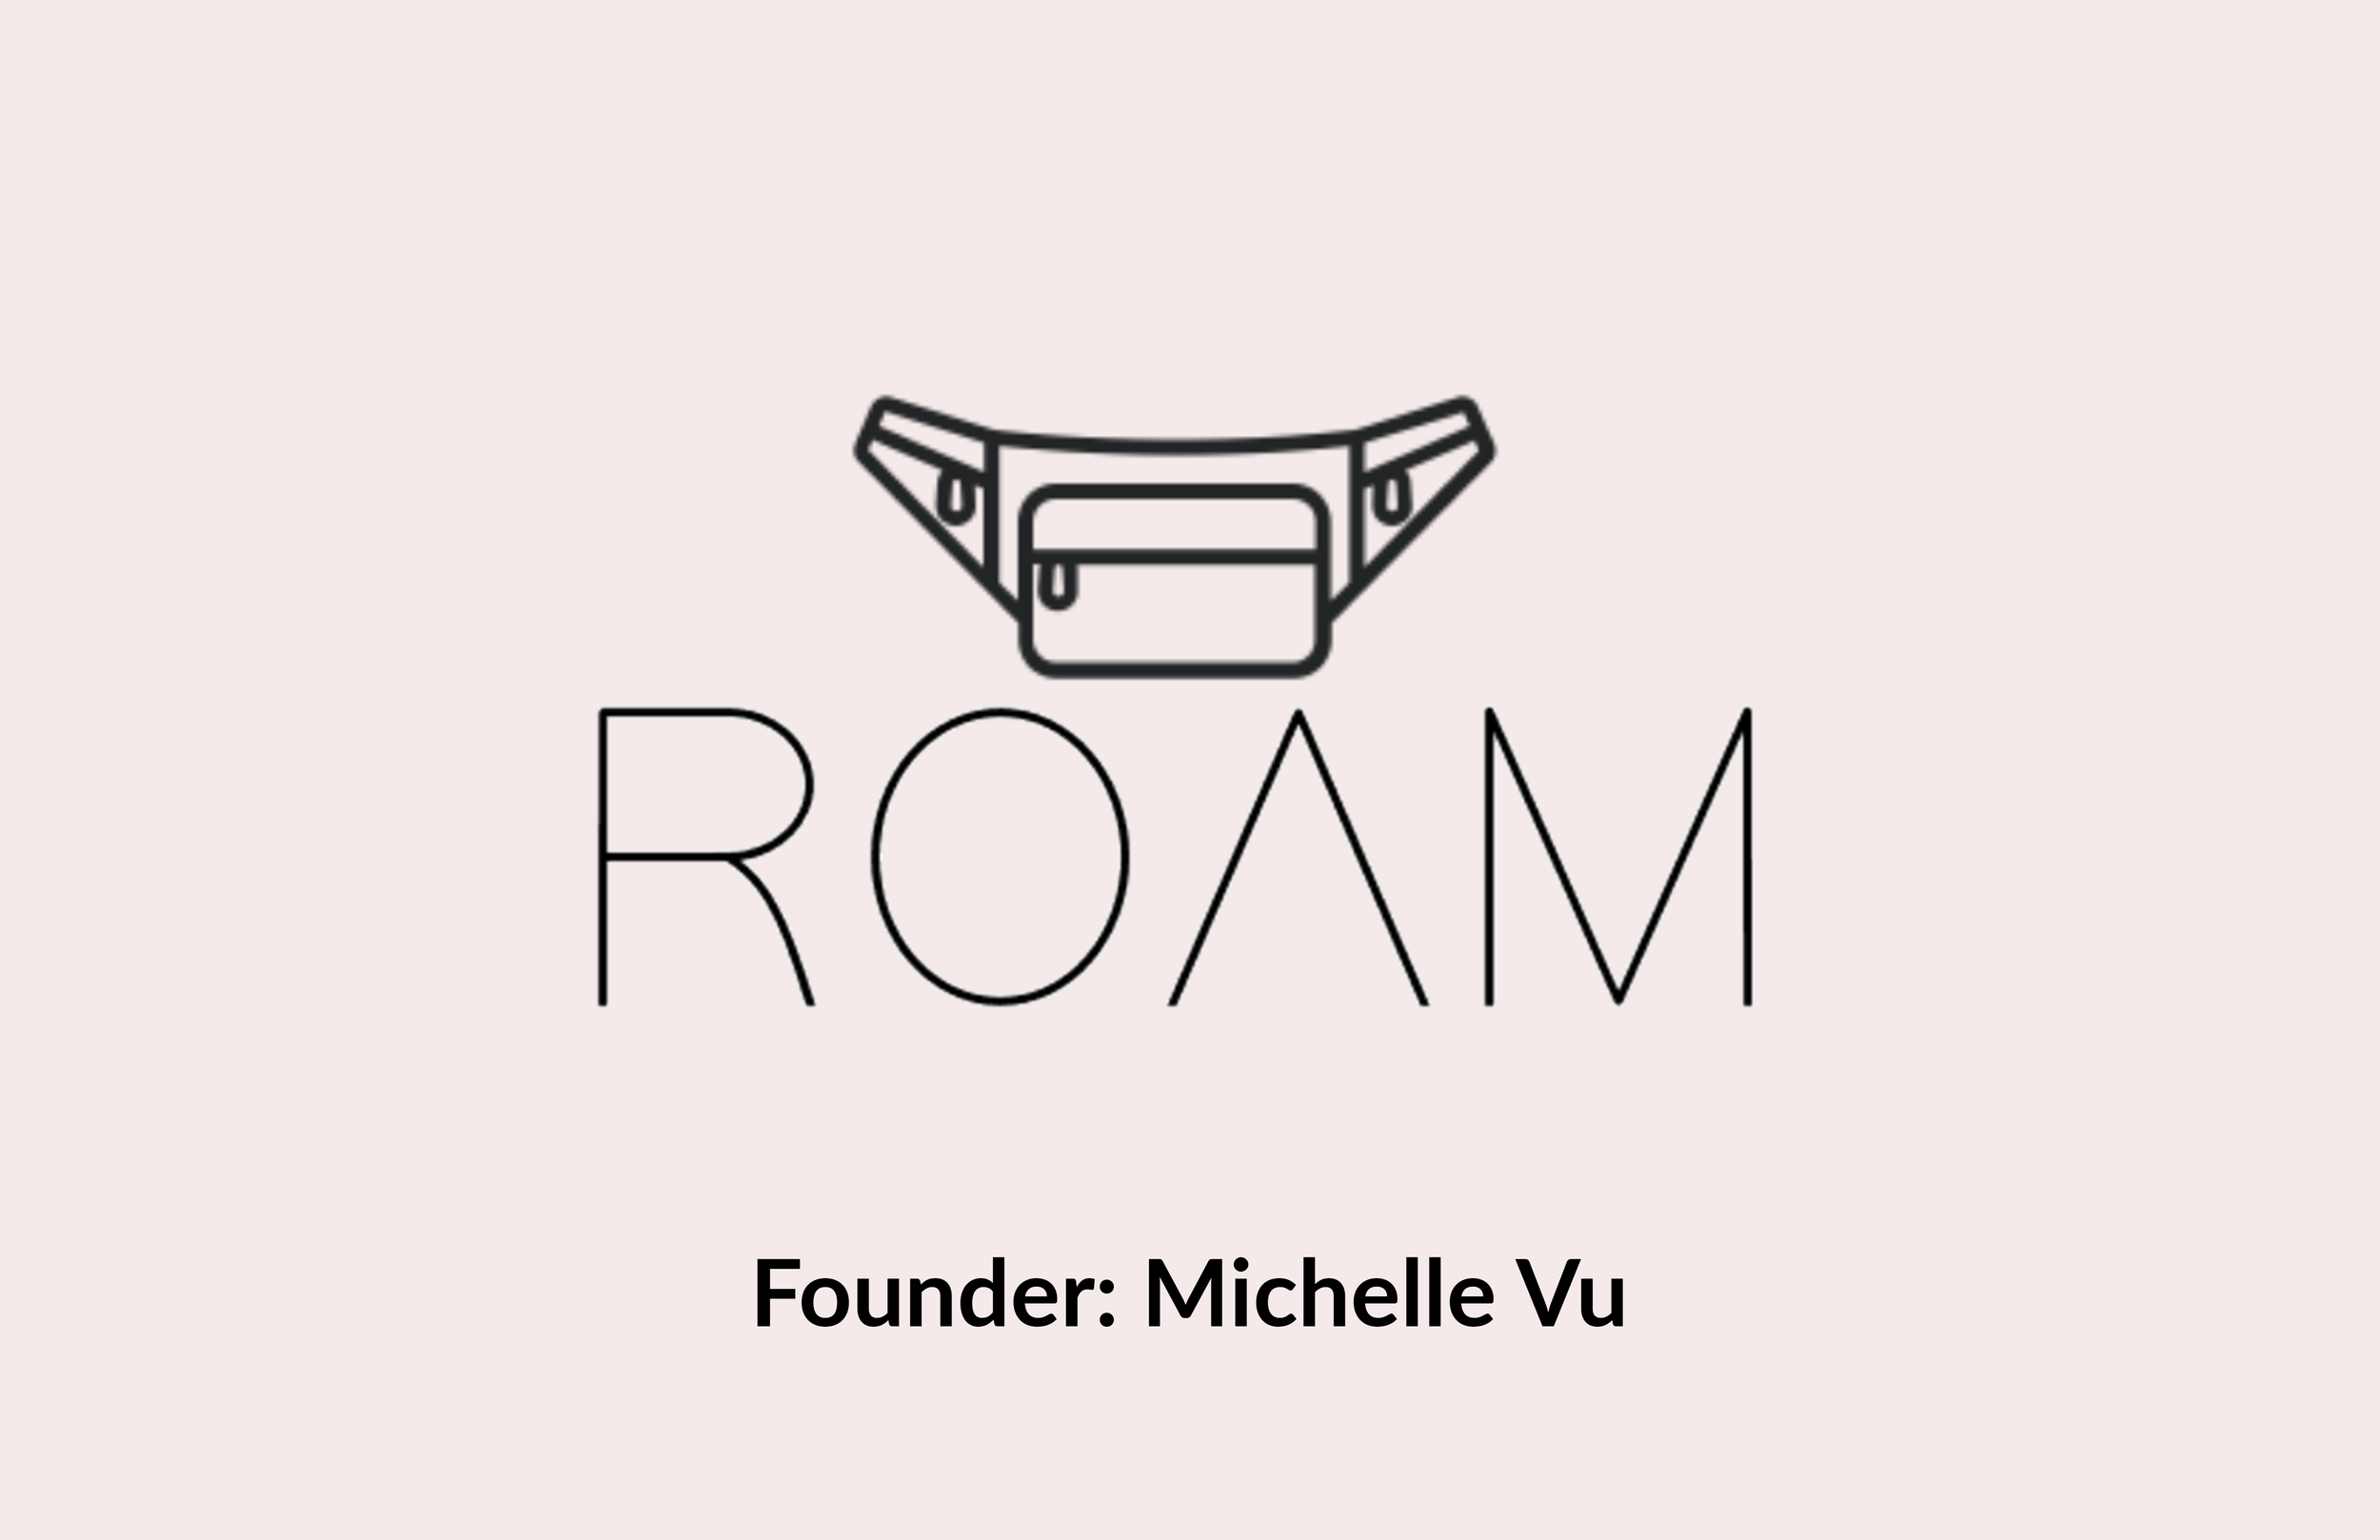 Roam - Roam is a fashionable travel hip bag that bridges the gap between style and structure. We are a making travel bags that have intentional functionality, have a role in sustainability, and provide a platform for styling.